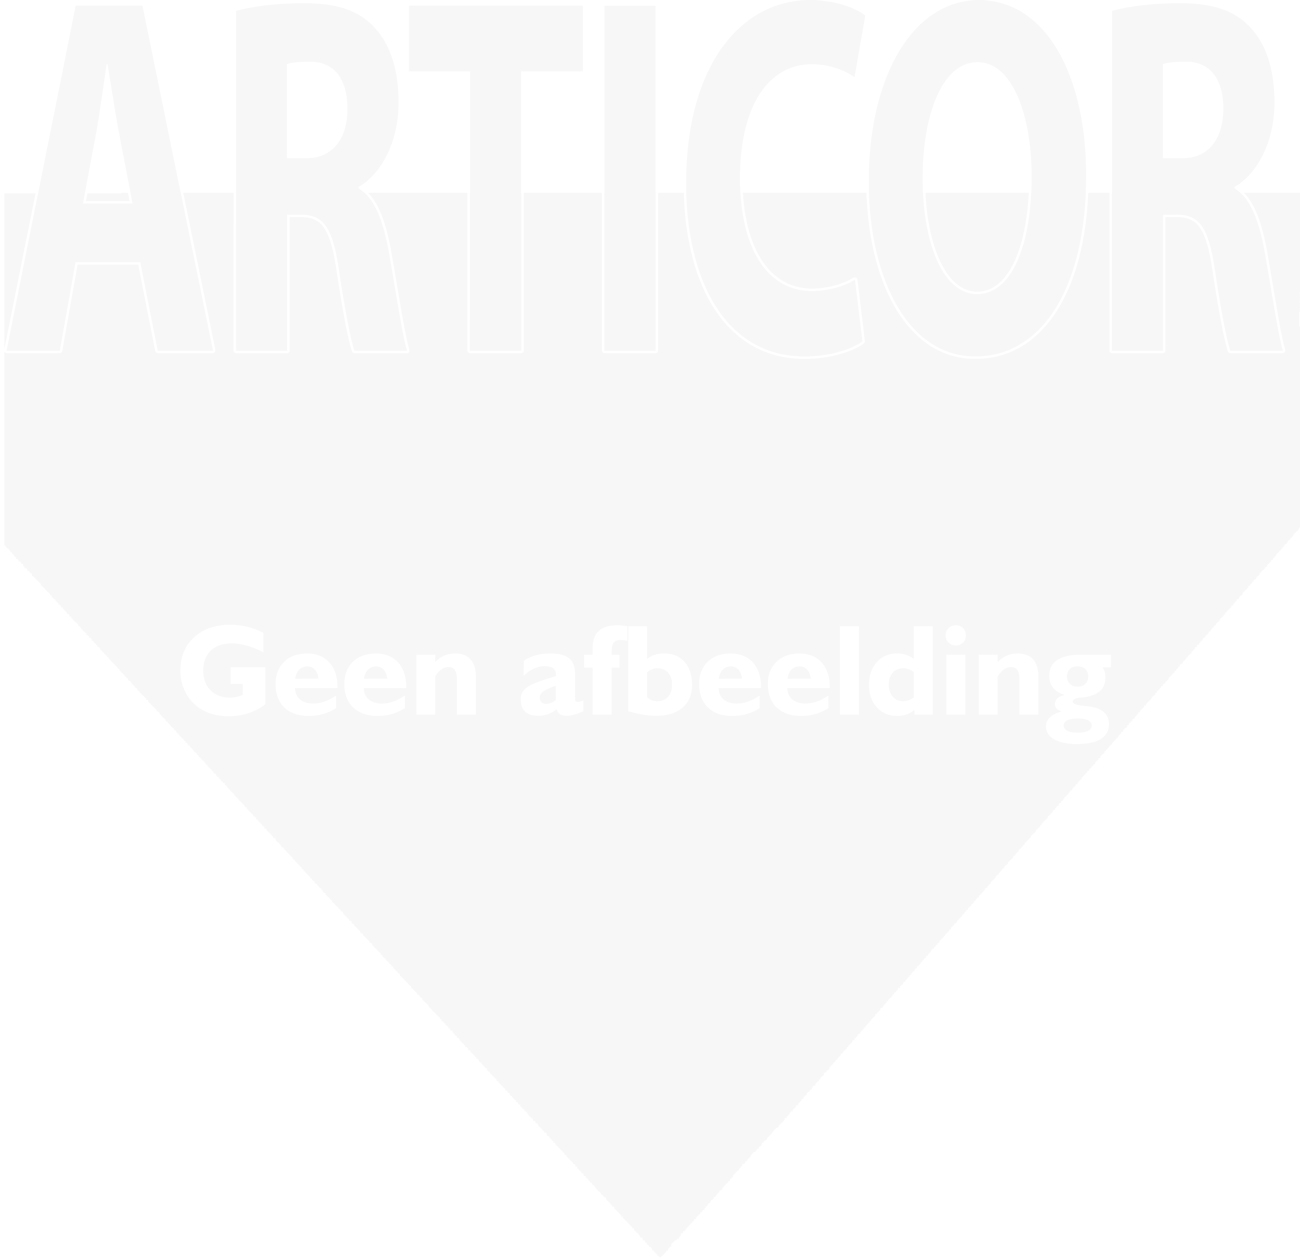 Dino's Cake toppers